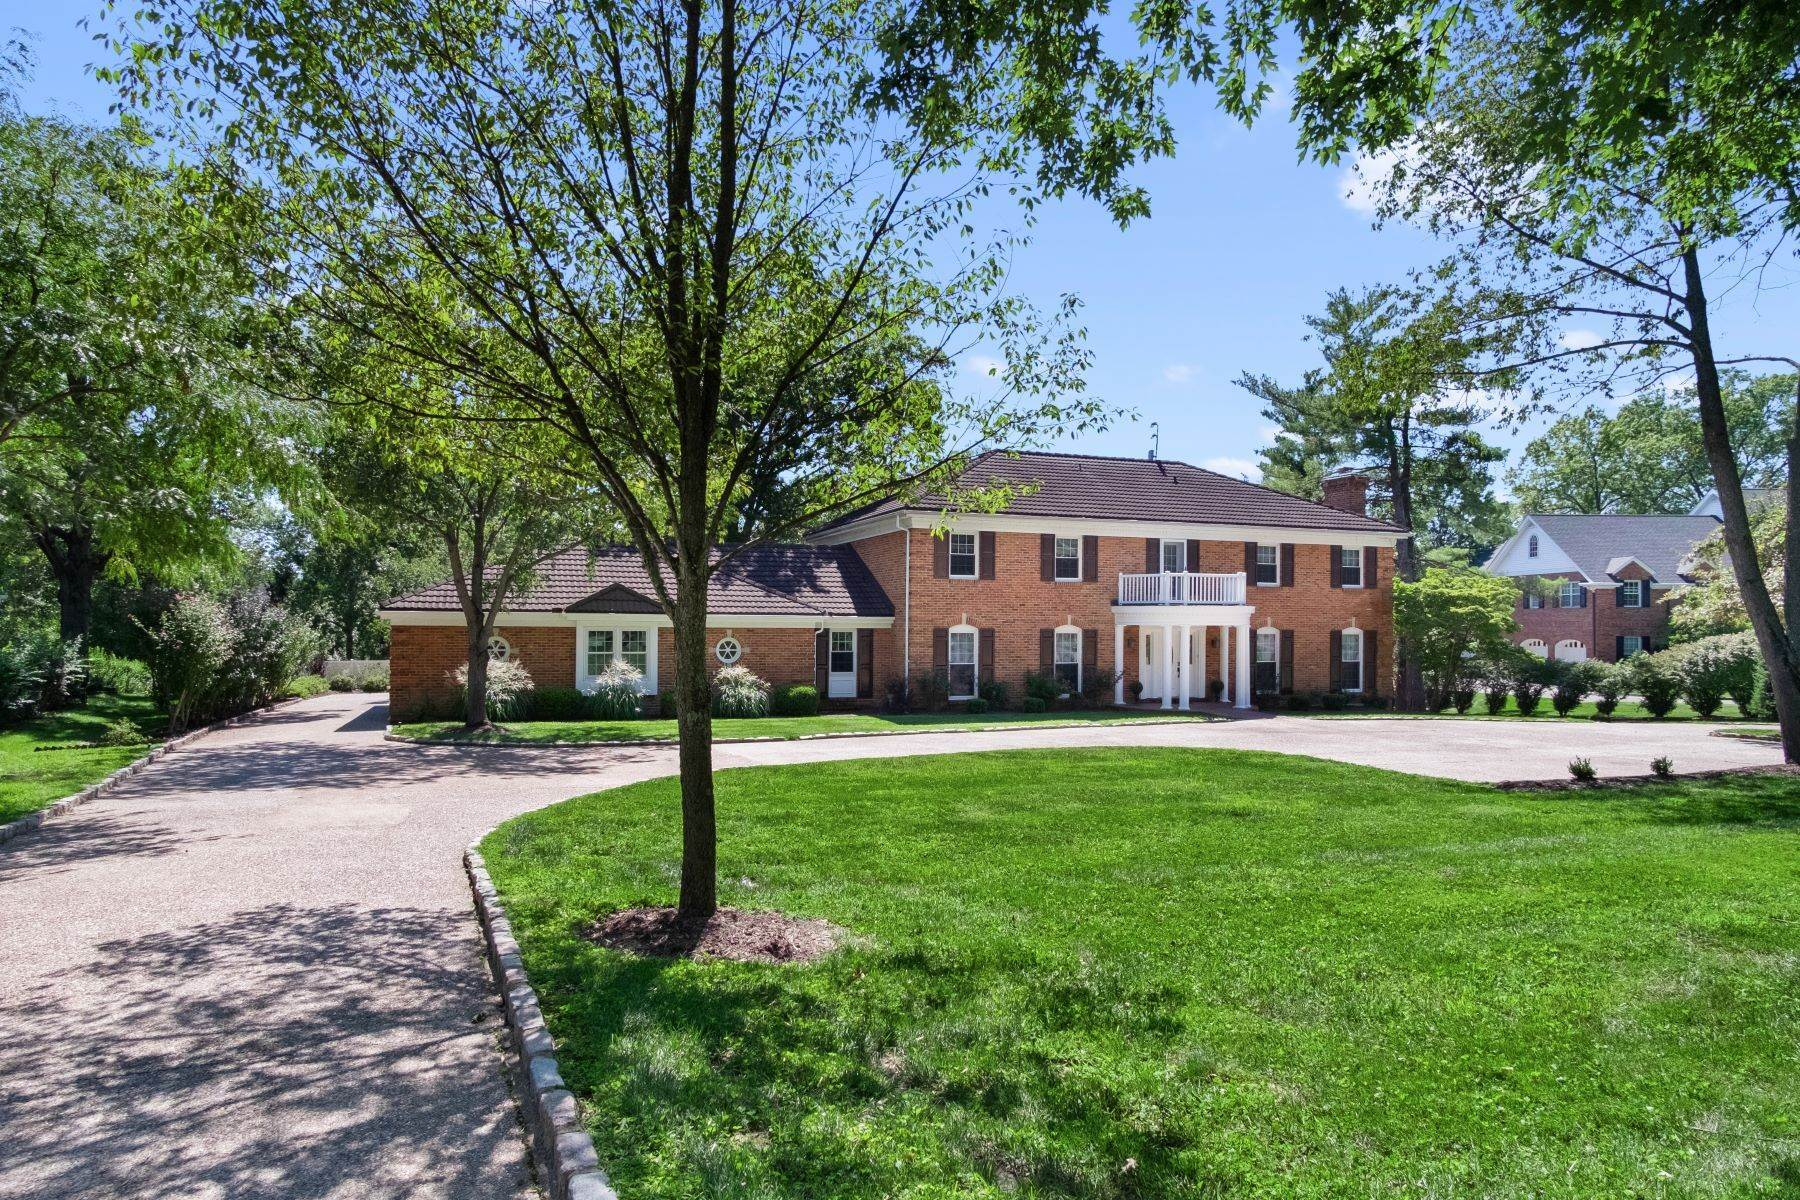 Single Family Homes for Sale at Experience Storied Muirfield Lane Steps from Bellerive Country Club Grounds 22 Muirfield Lane Town And Country, Missouri 63141 United States